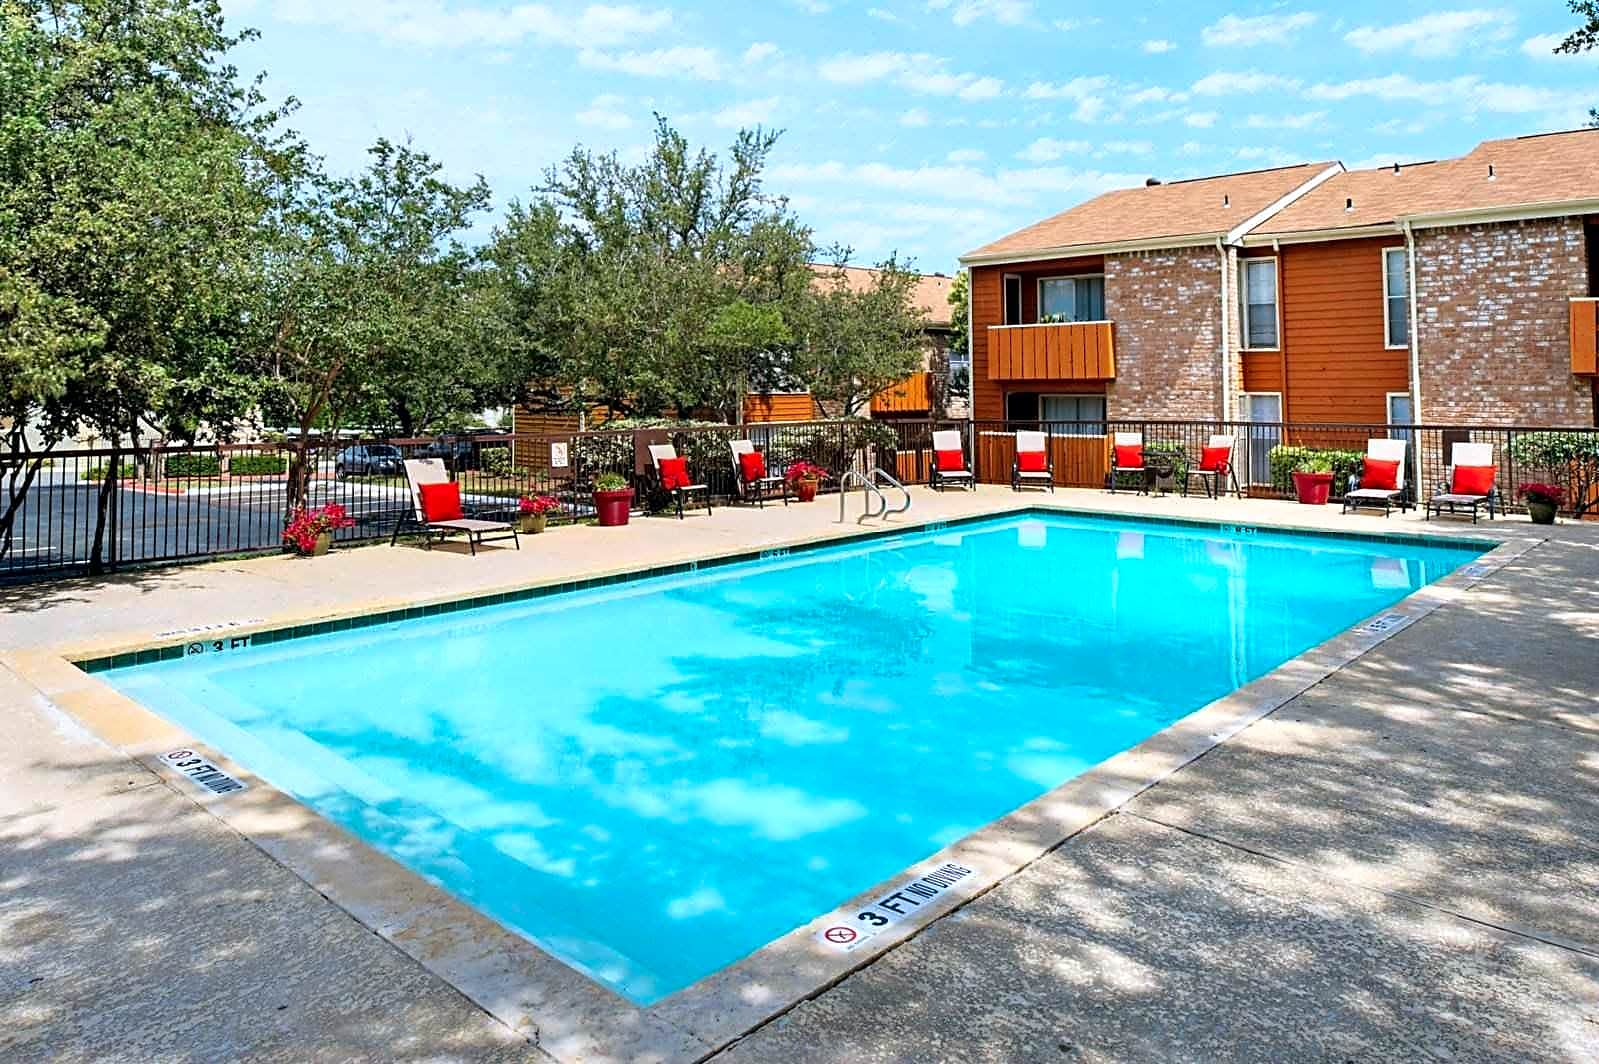 Photo: San Antonio Apartment for Rent - $668.00 / month; 2 Bd & 2 Ba